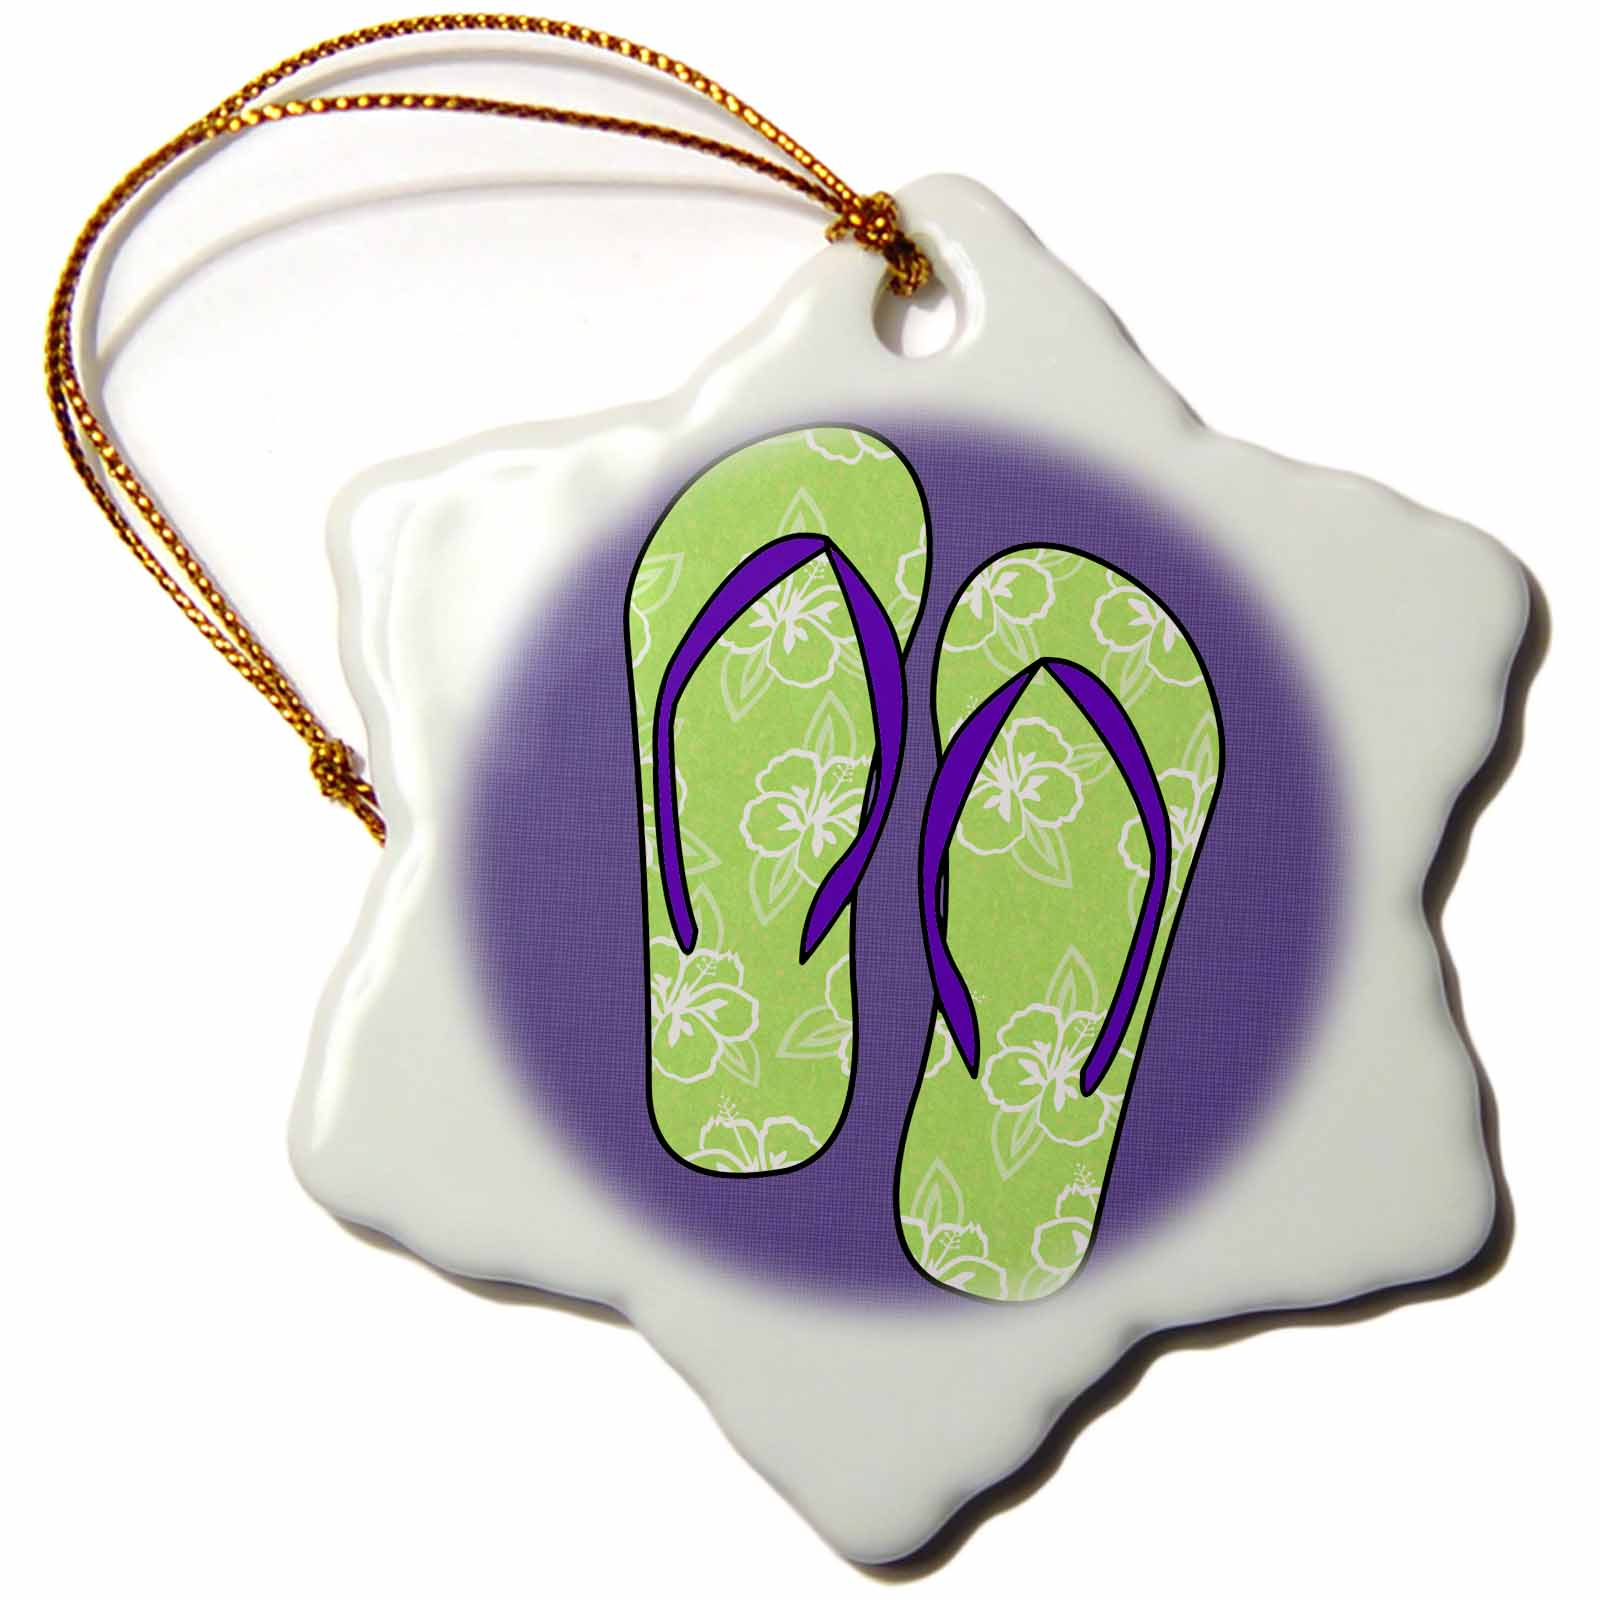 3dRose Cute Flip Flops Lime Green Flower Print and Purple, Snowflake Ornament, Porcelain, 3-inch